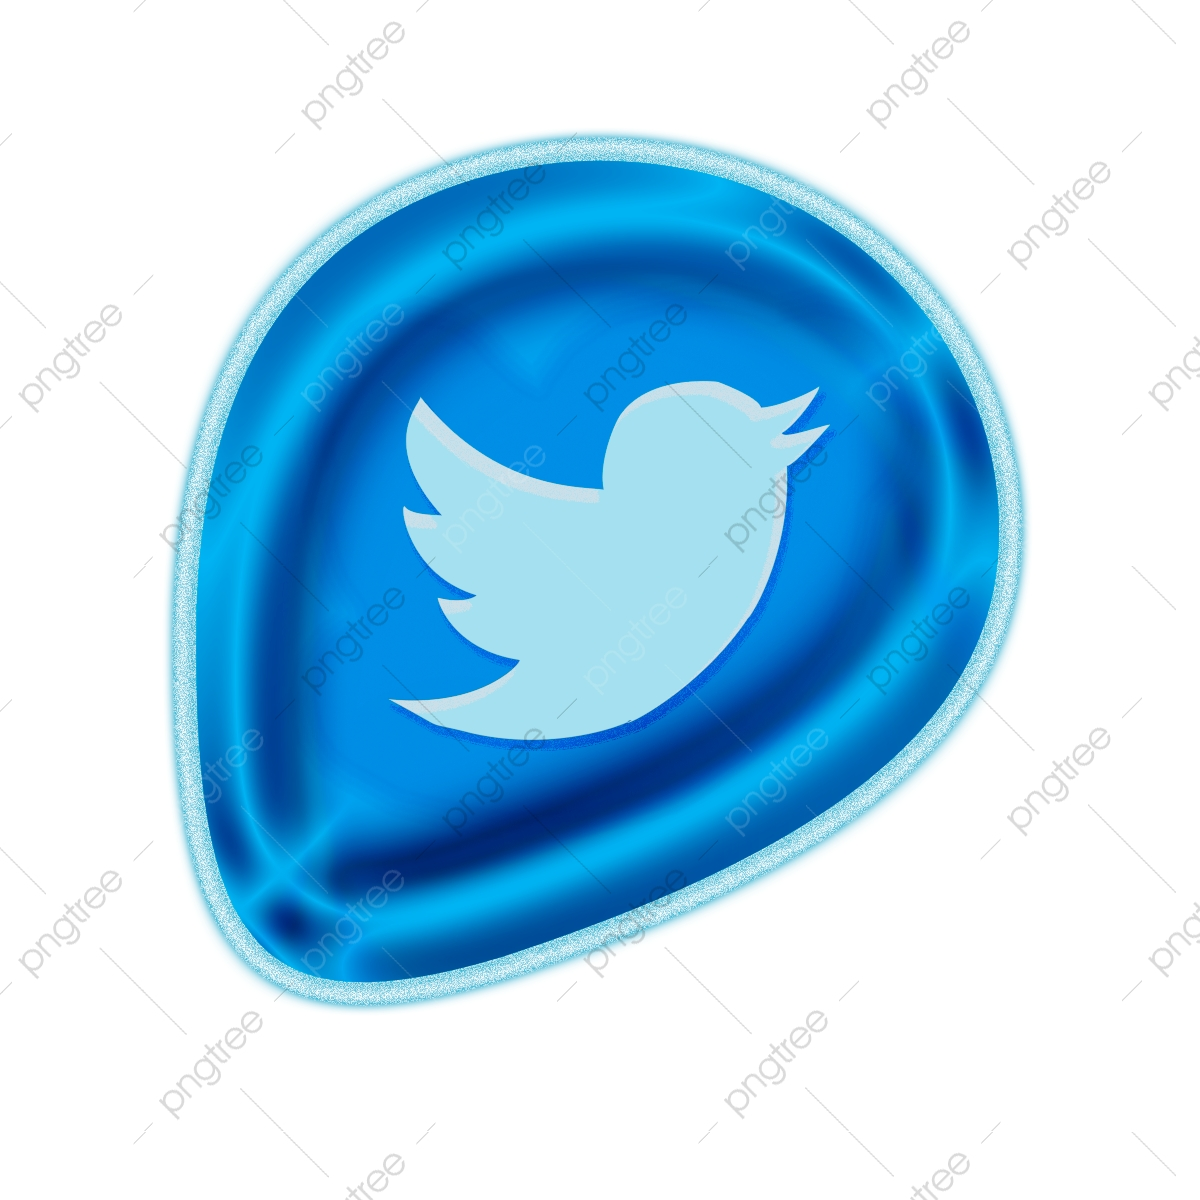 Twitter copyright free. Color icon logo vector